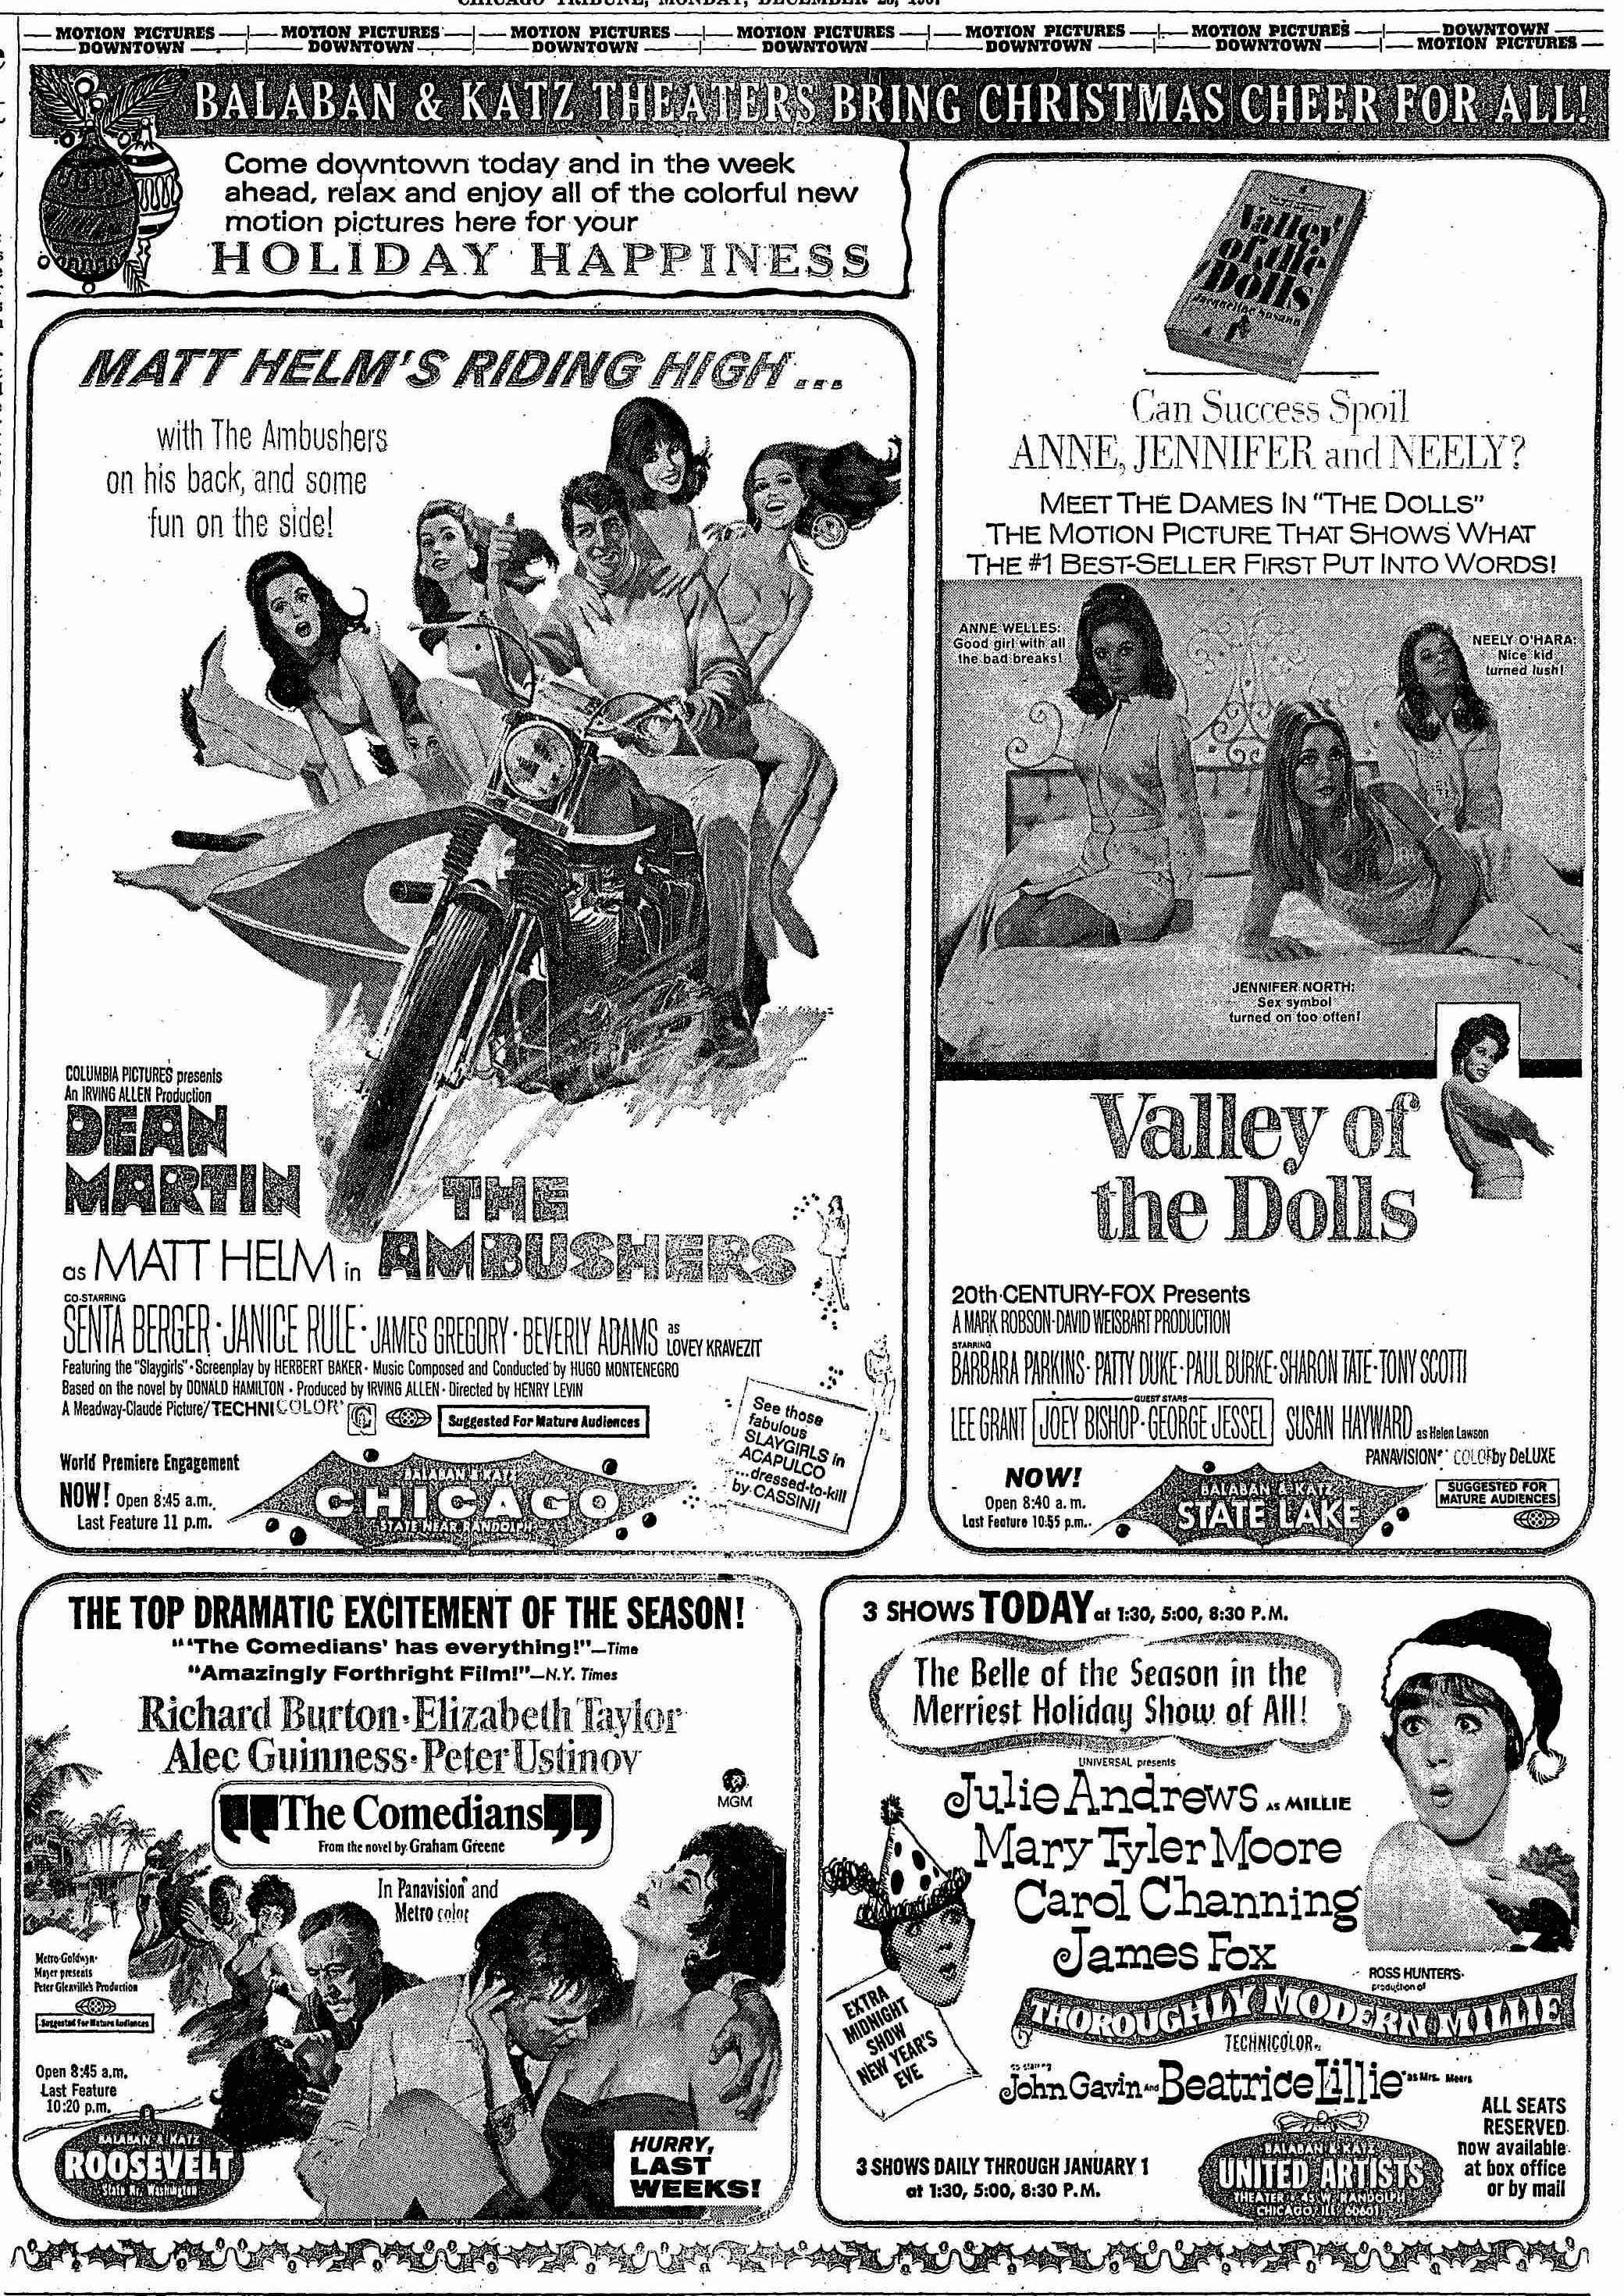 Ghosts of Christmas movie ads past | San Diego Reader